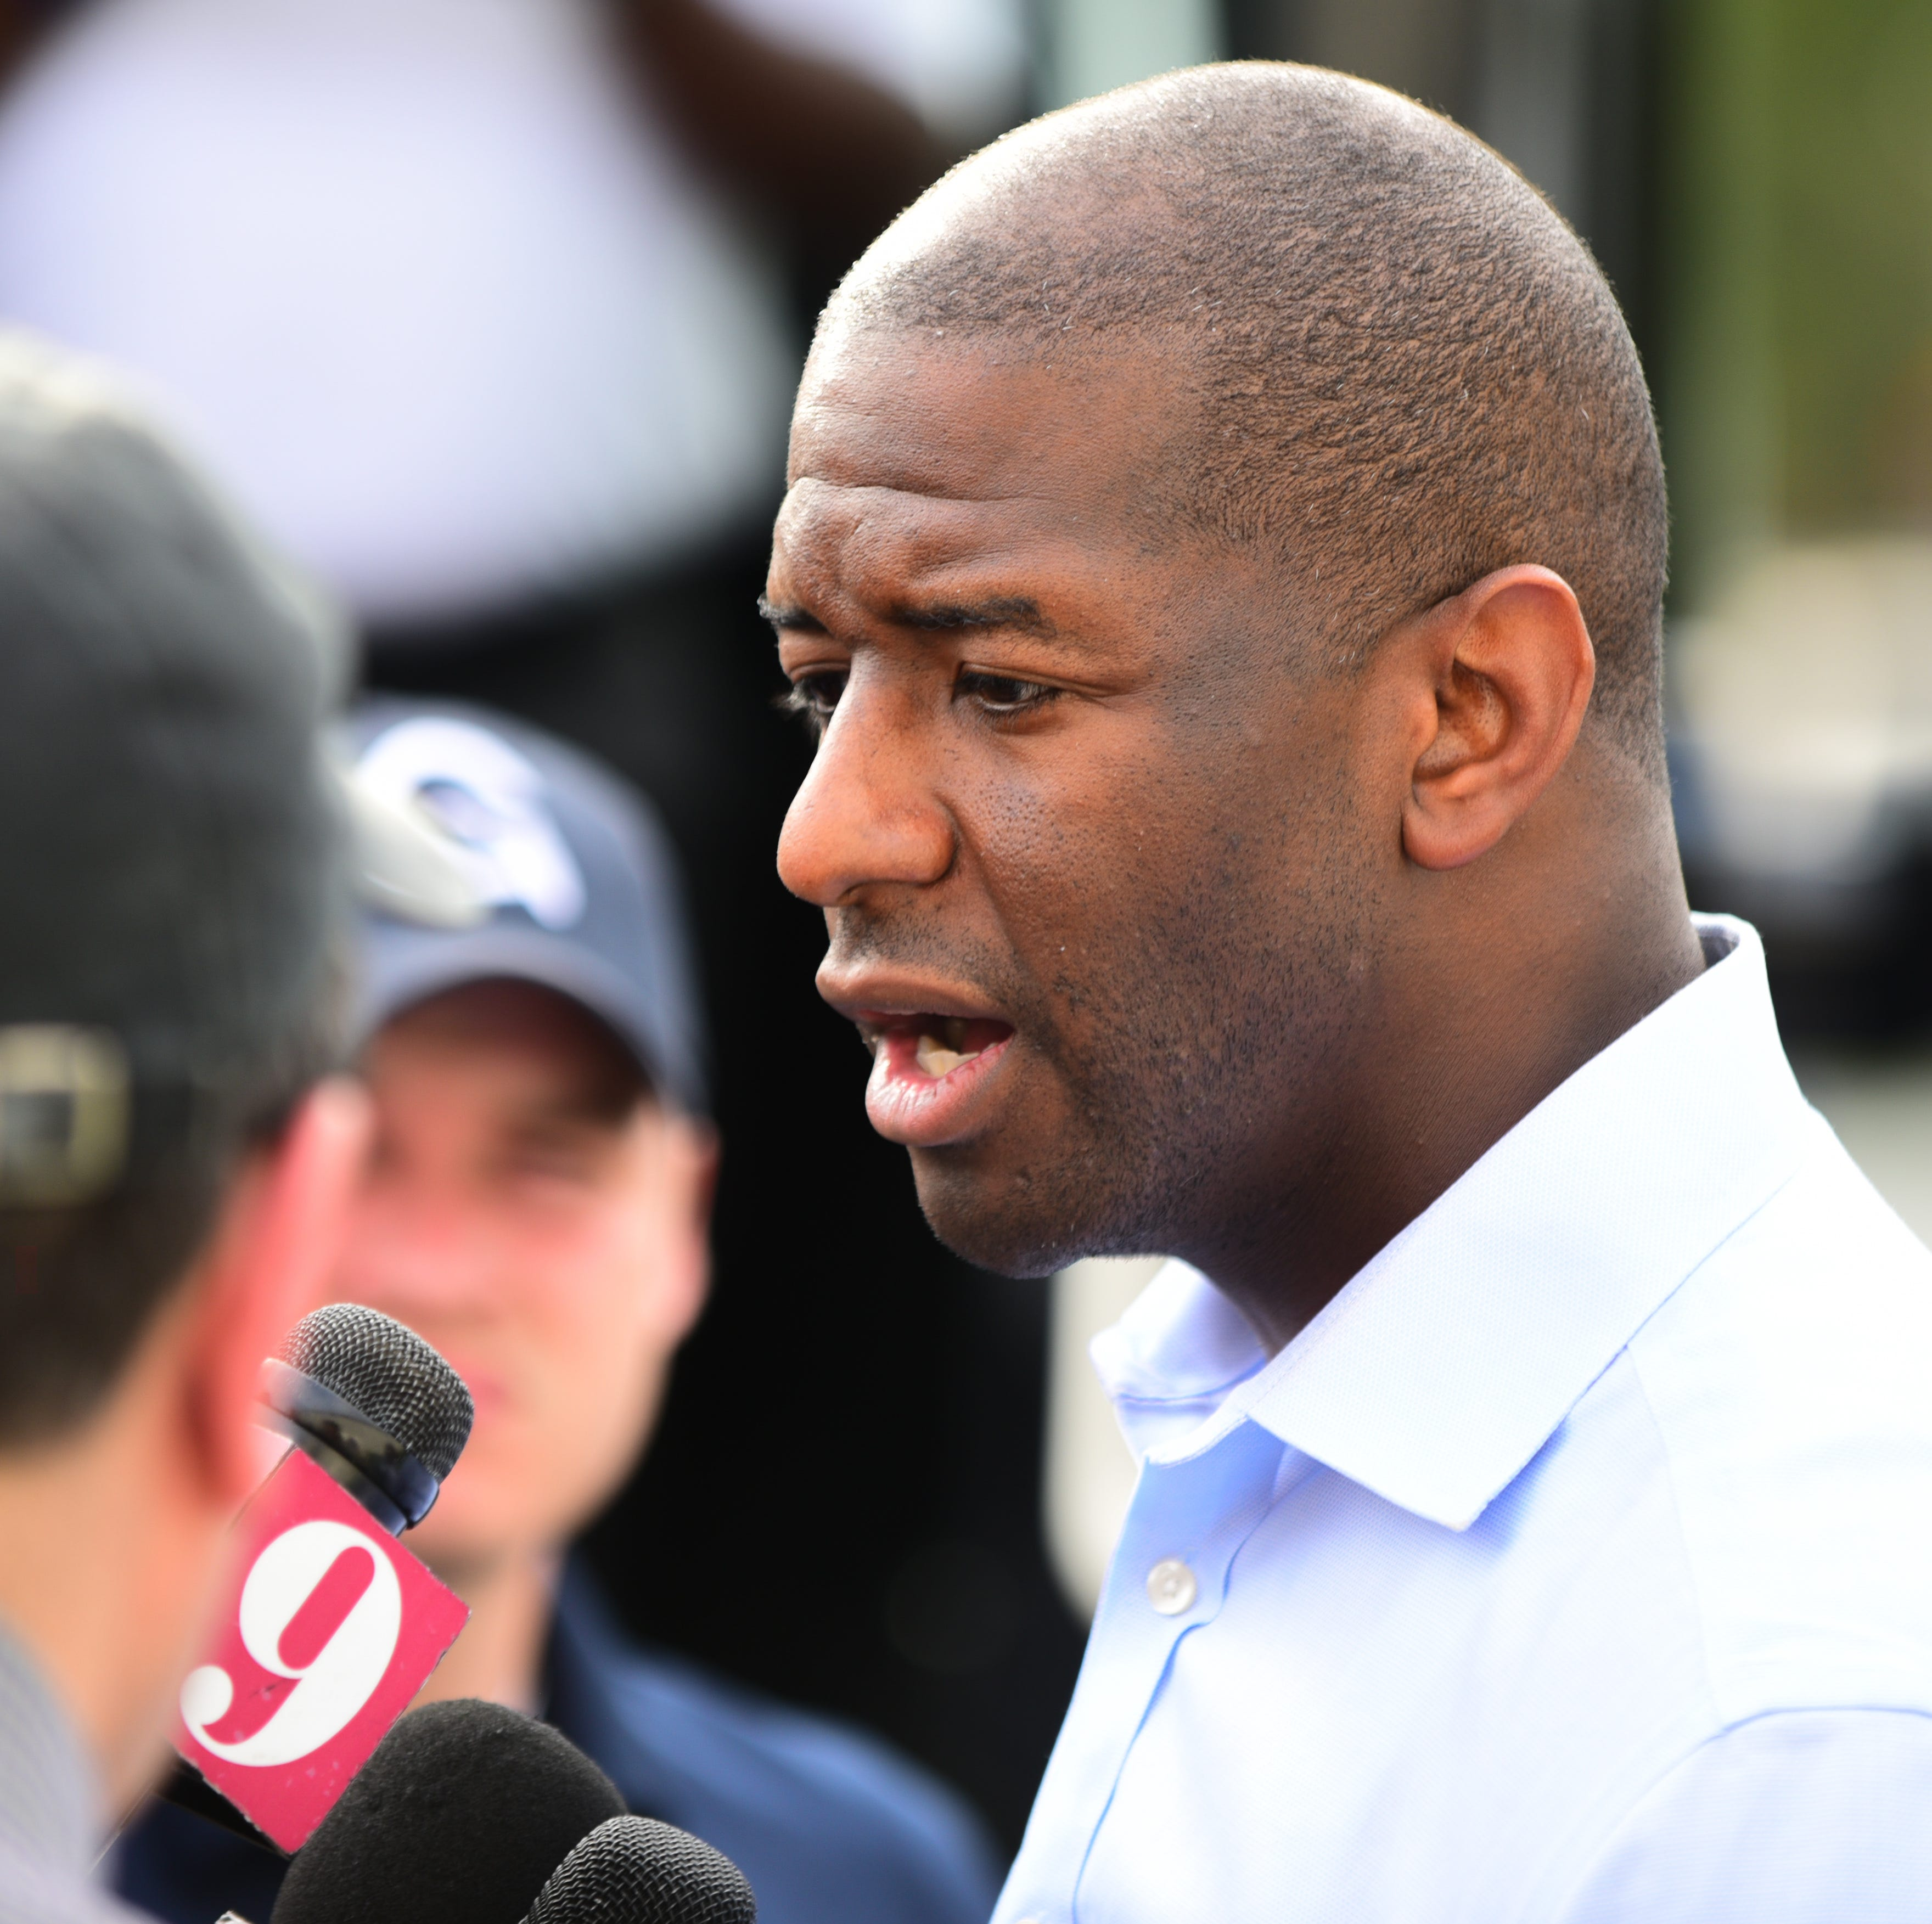 Witnesses in doubt on the eve of Andrew Gillum's ethics hearing